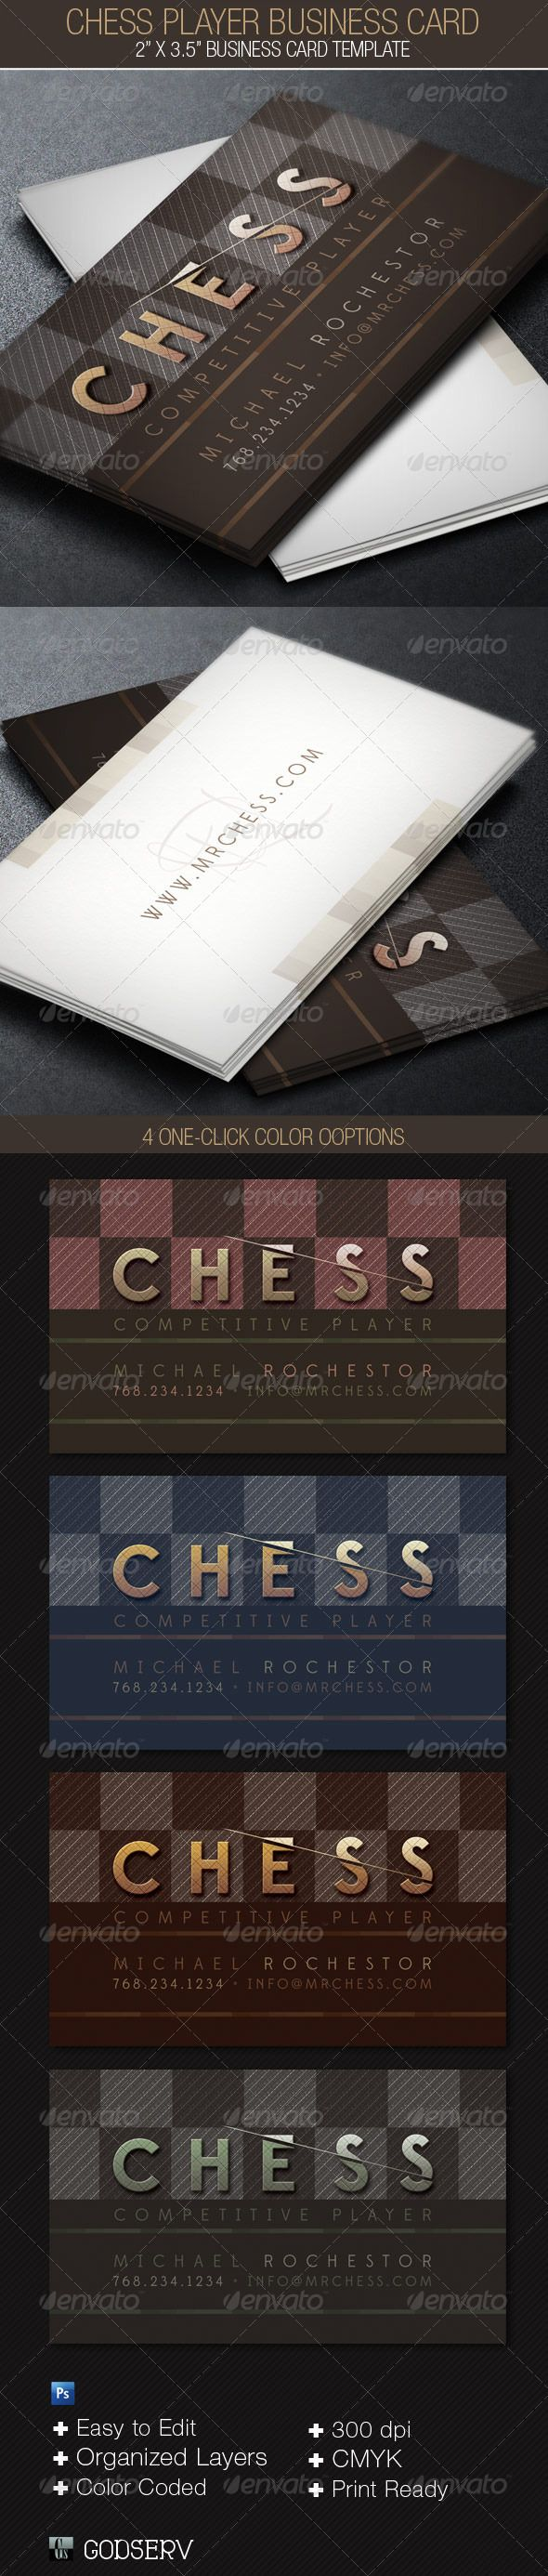 Chess Player Business Card Template - $6.00